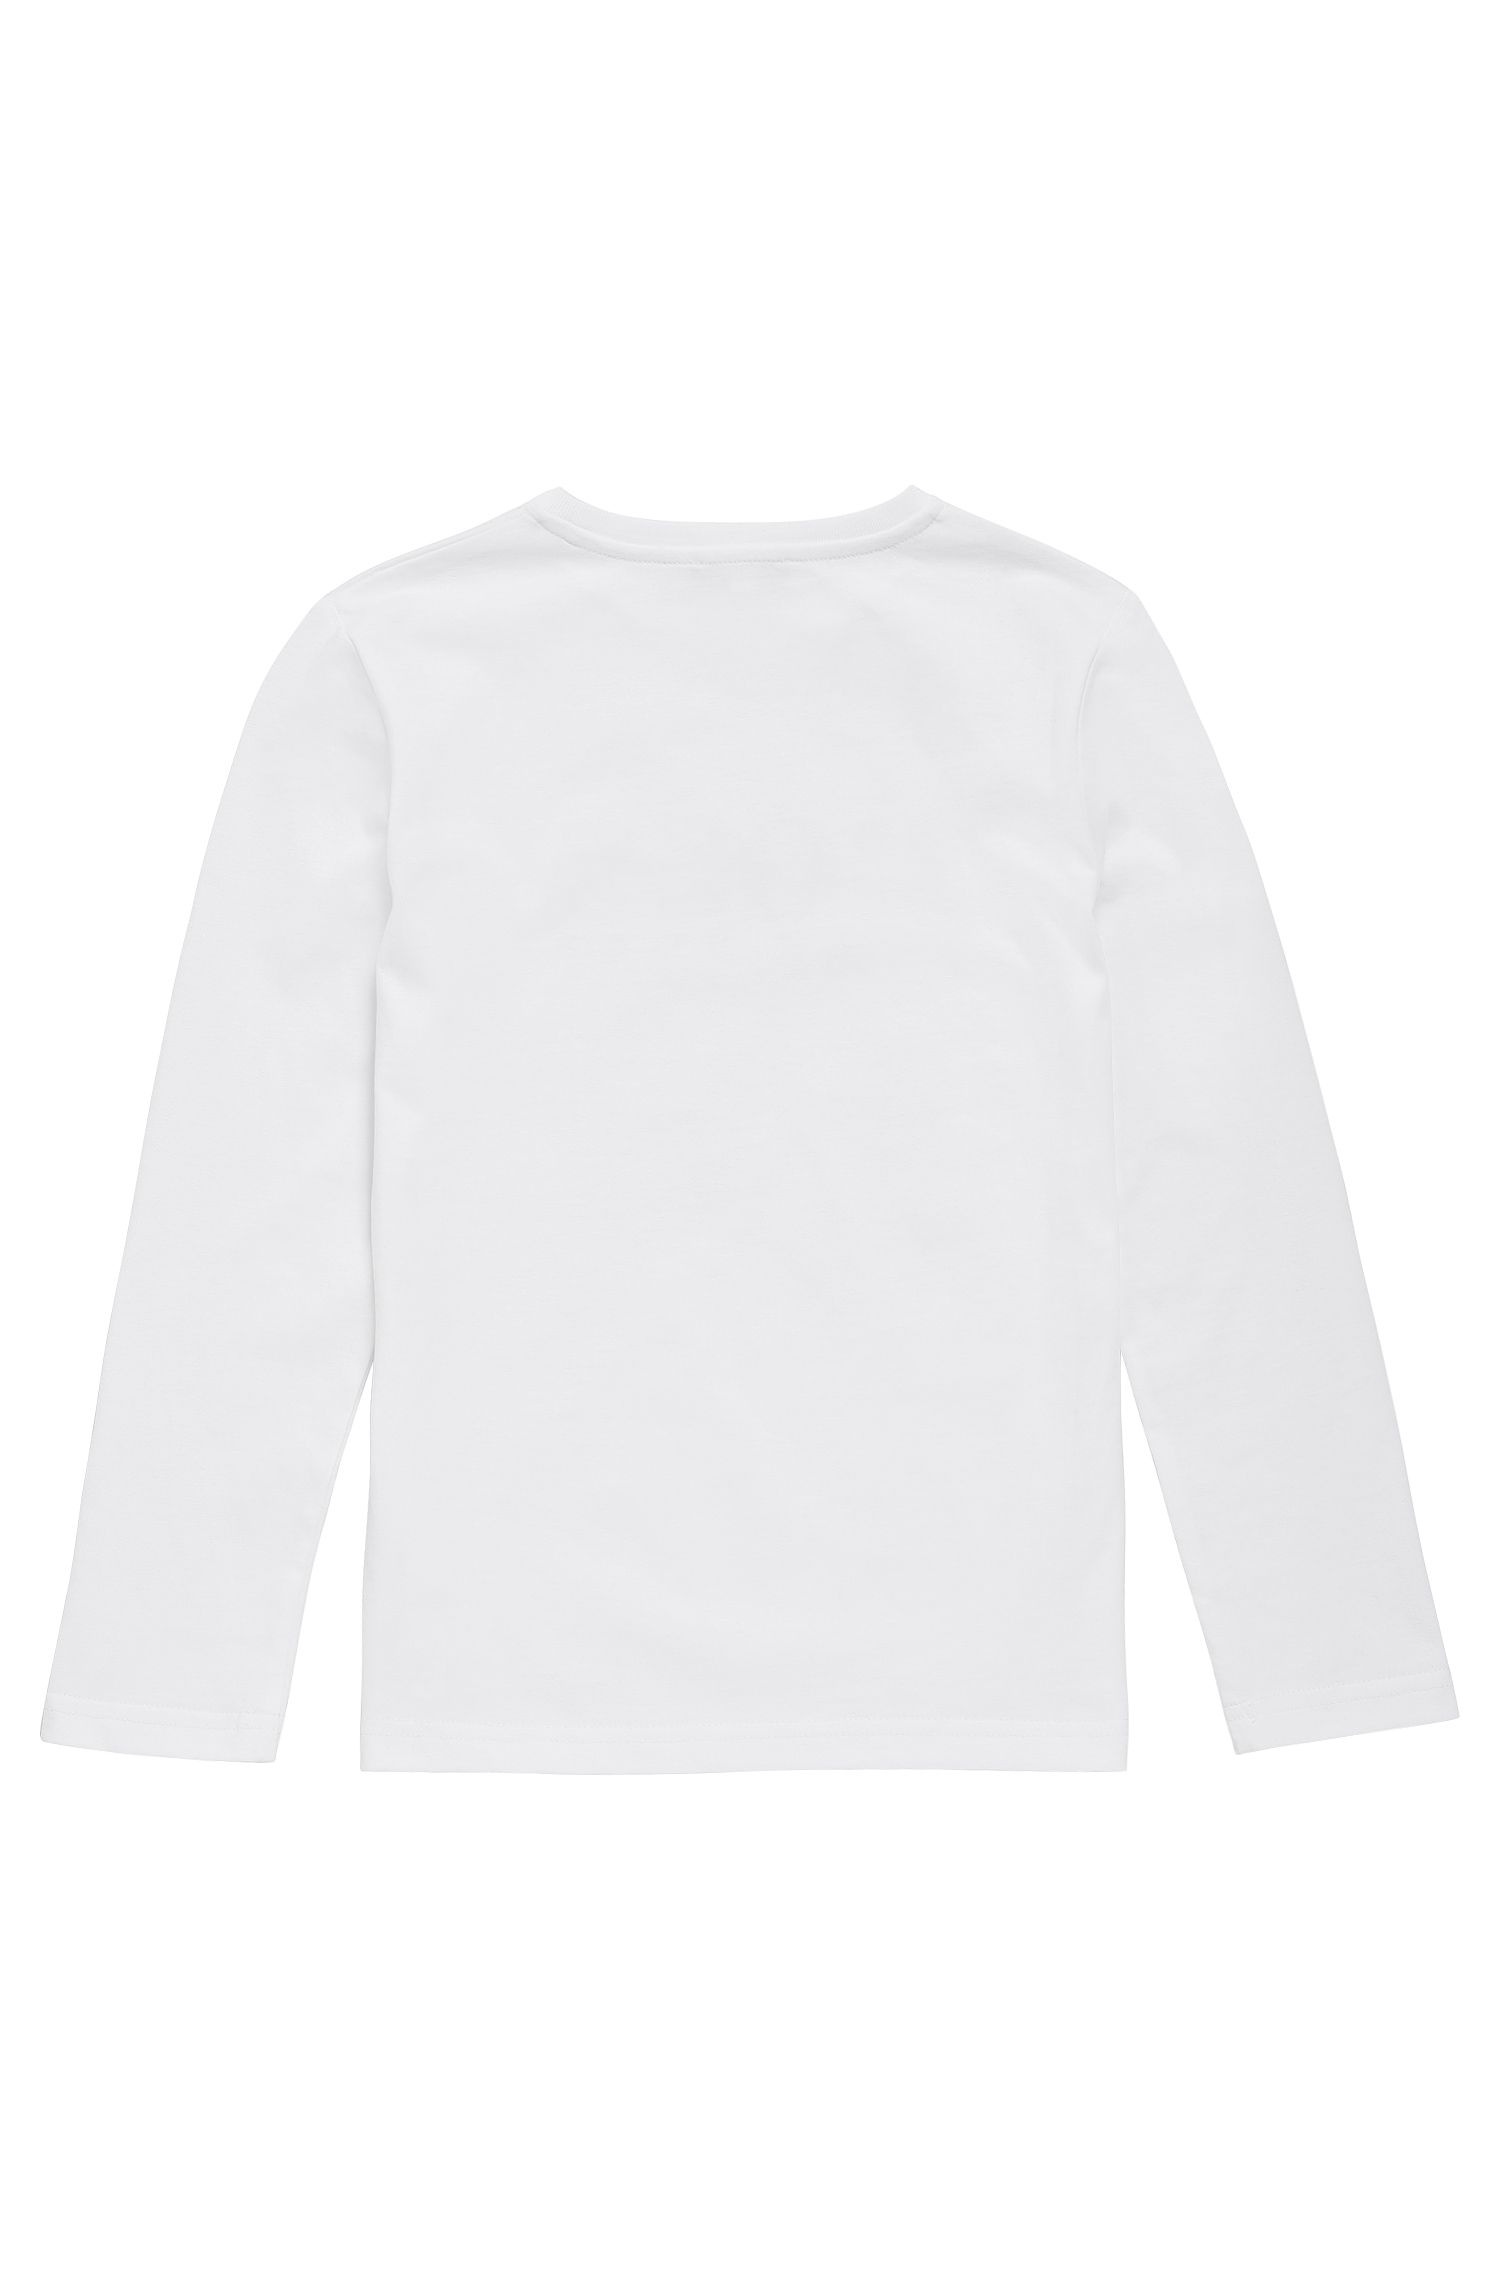 Kids' long-sleeved cotton shirt with logo print: 'J25V42'